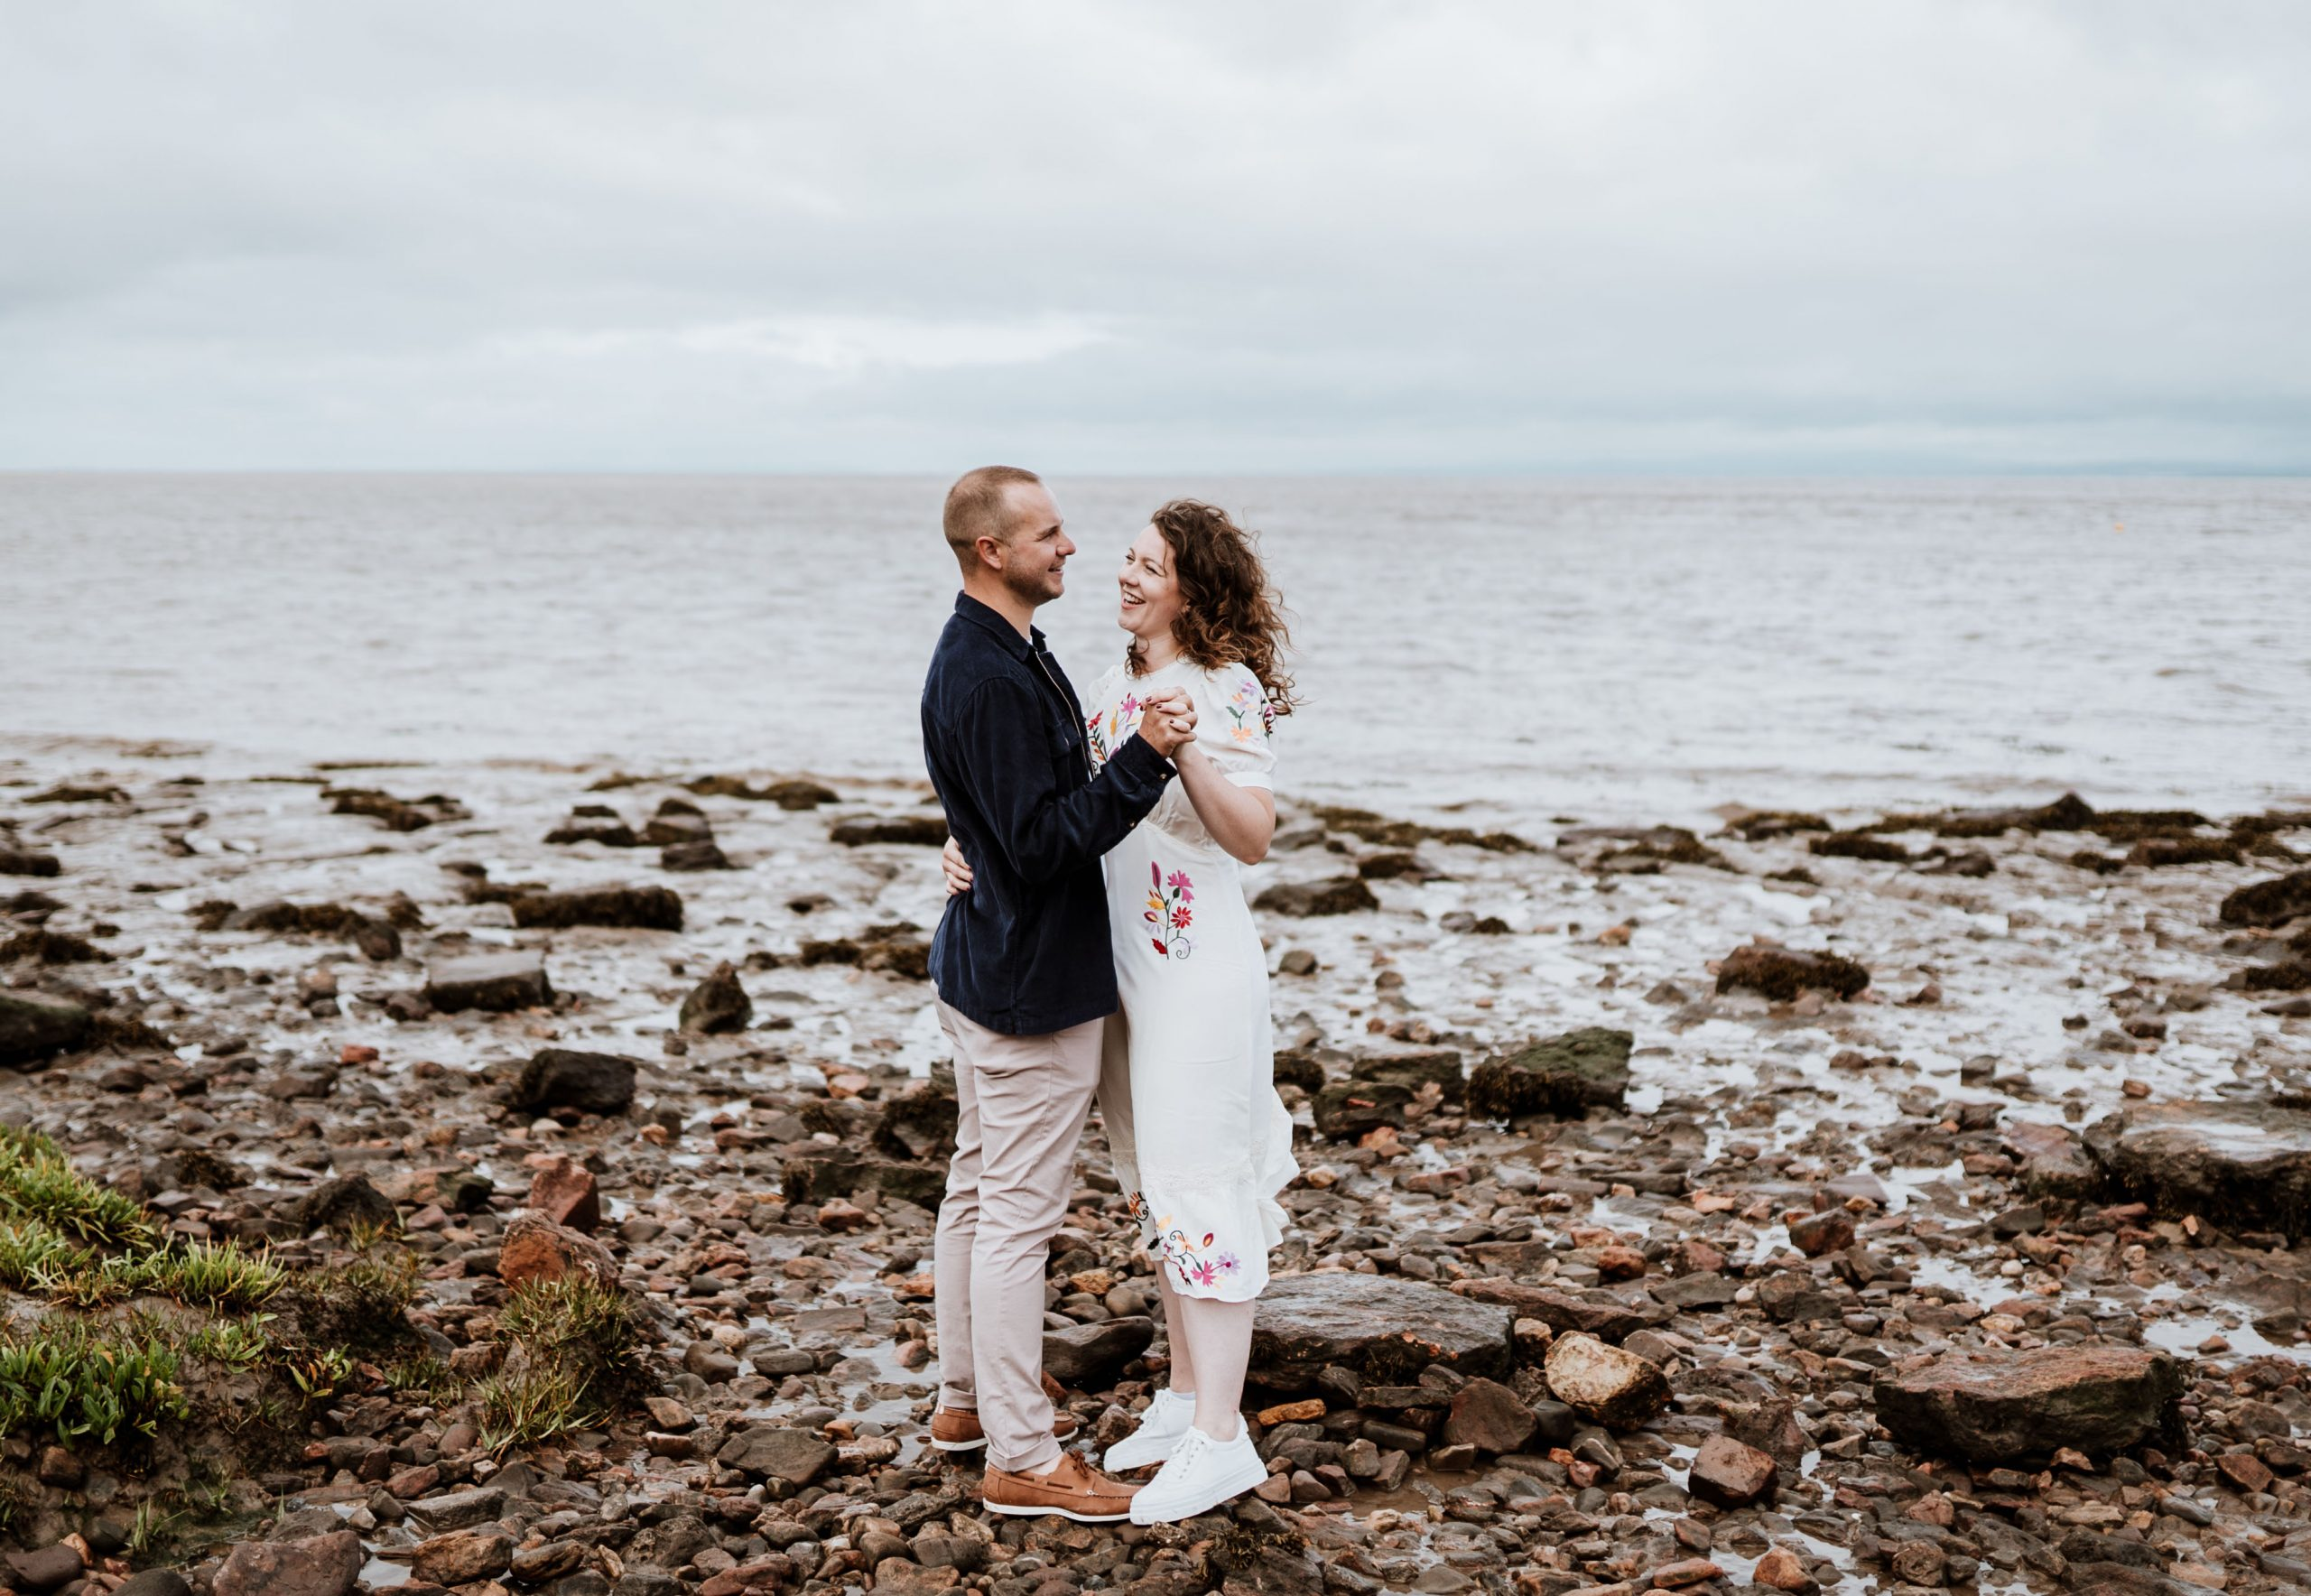 Wedding photographer Bristol, South West, Somerset, Bath, Devon